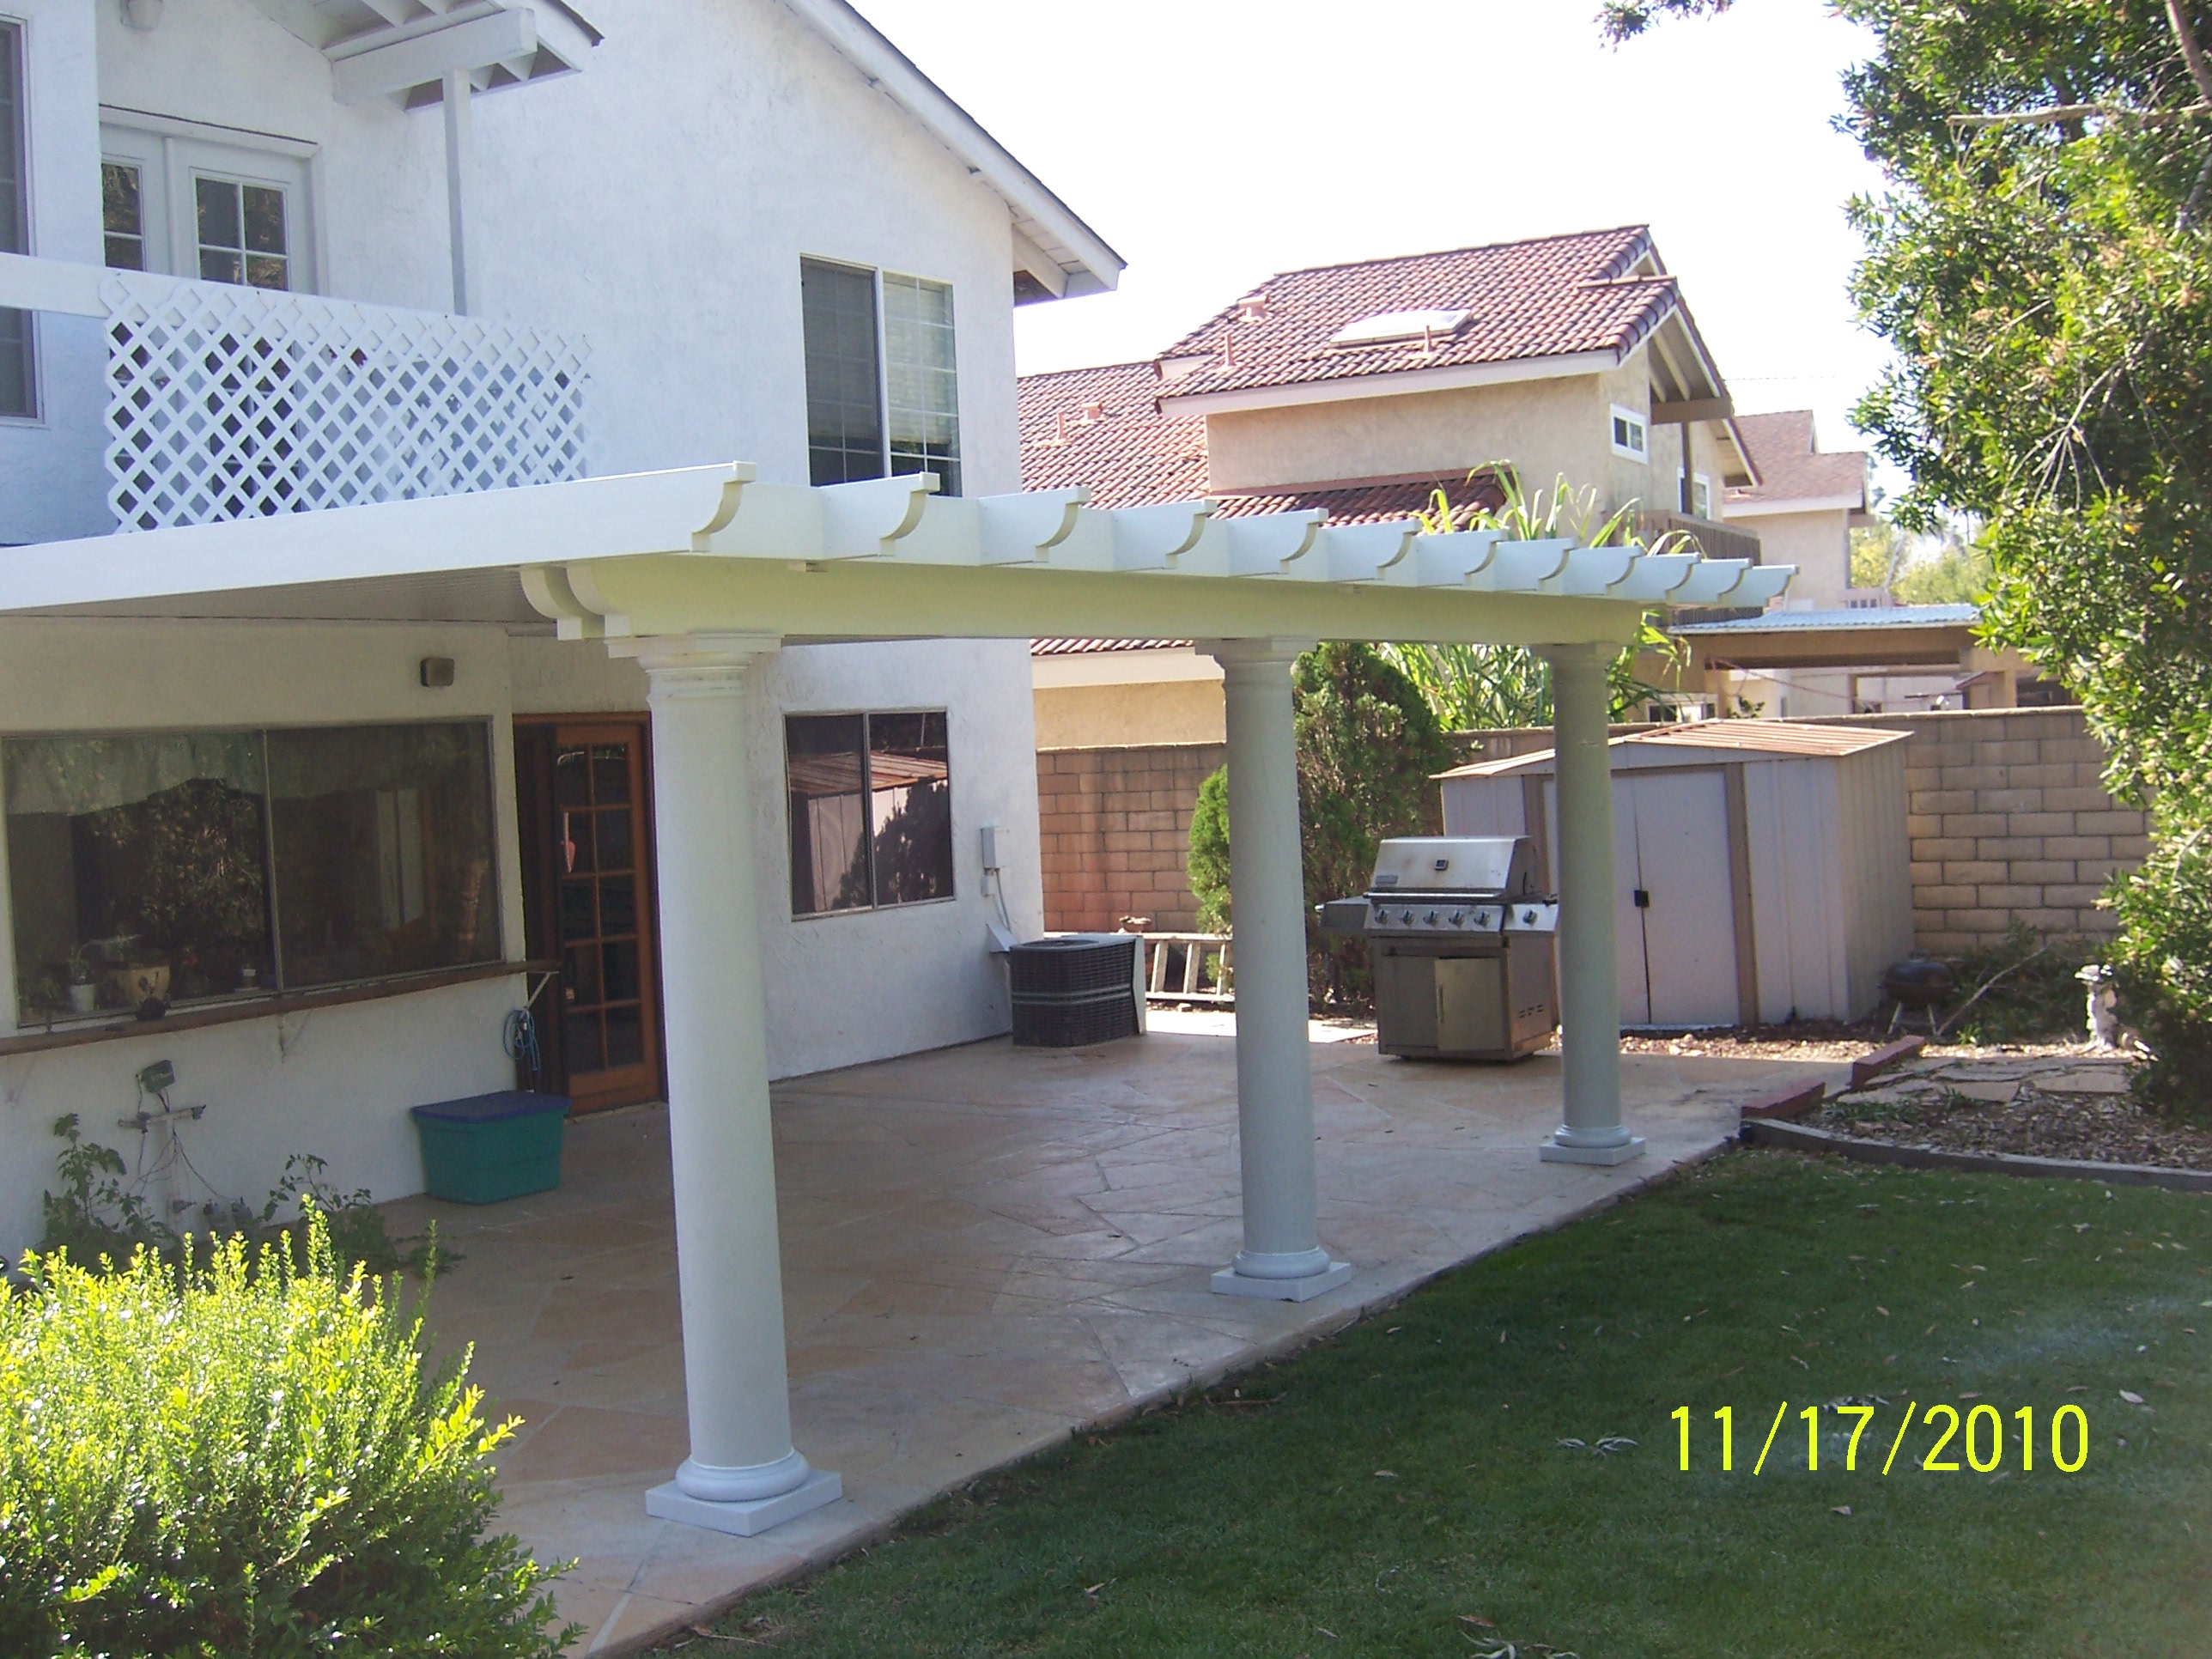 Payless Patio Covers Diy Kits 5495 Mansion Ct La Verne Ca 91750